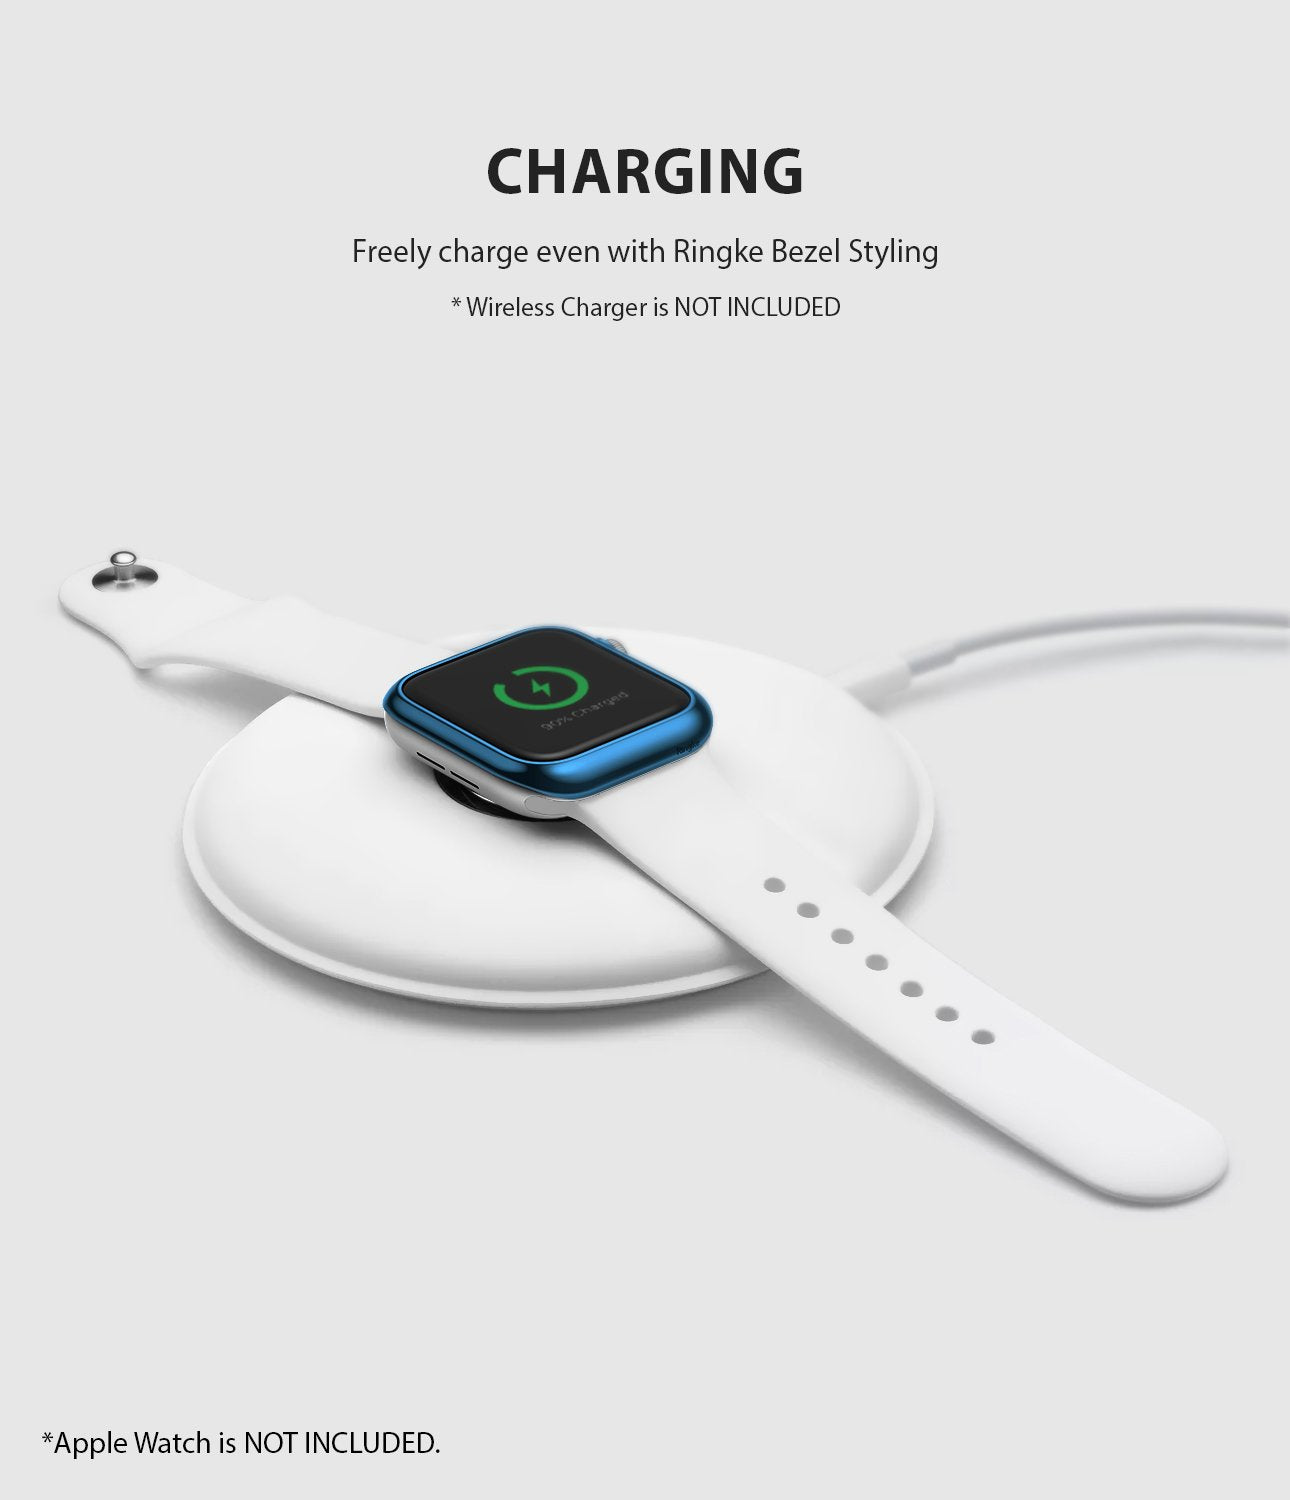 ringke bezel styling 40-04 glossy blue stainless steel on apple watch series 5 / 4 40mm wireless charging